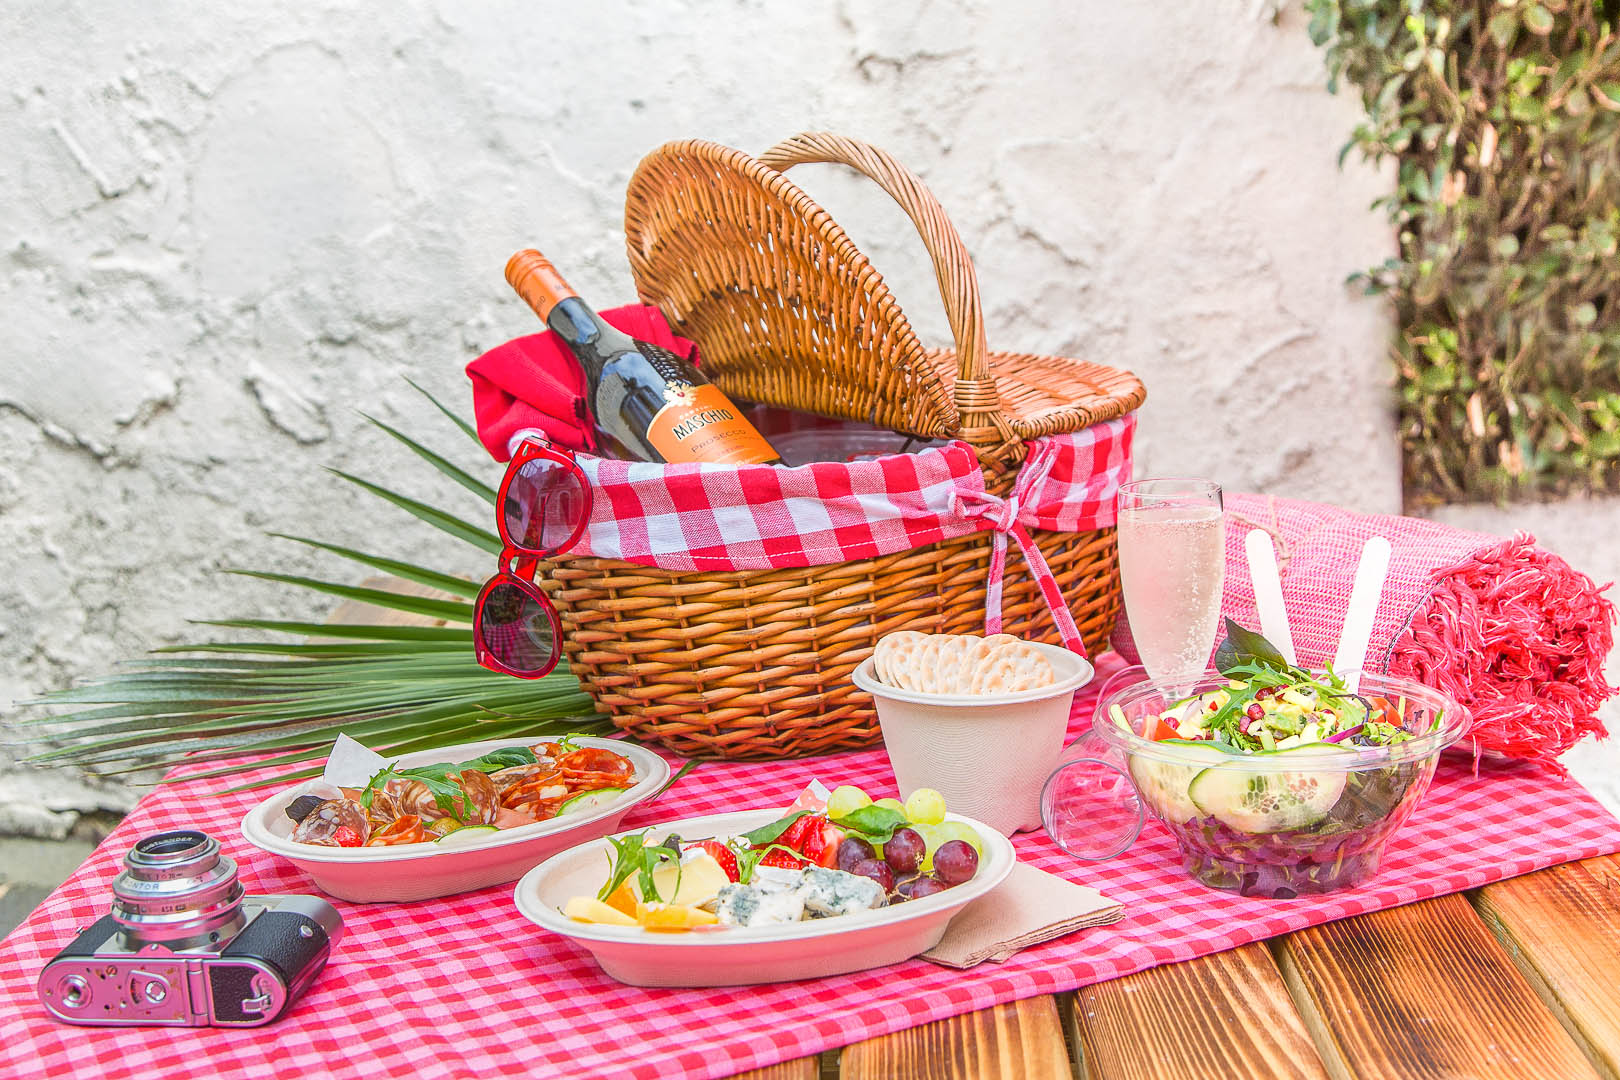 Picnic on a table with basket   Food Photography